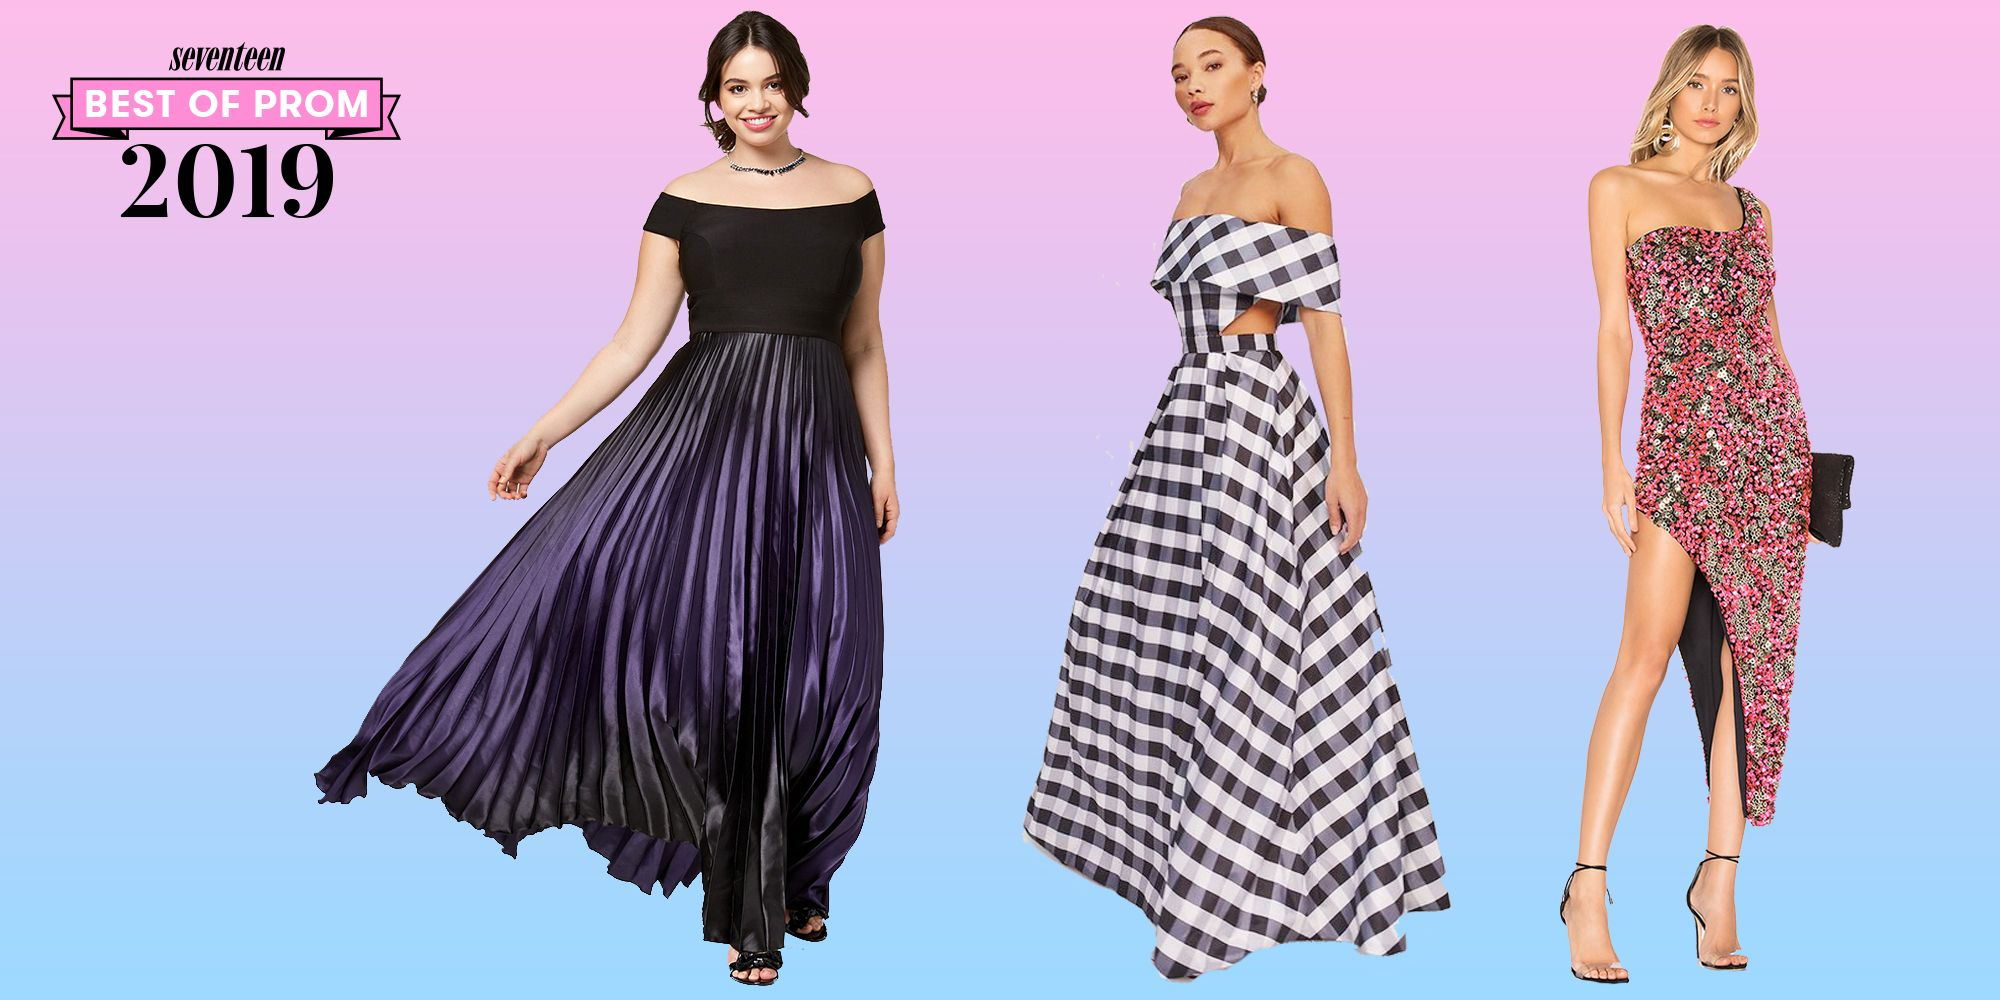 16 Most Unique Prom Dresses For 2019 Cool Formal Dresses For Prom